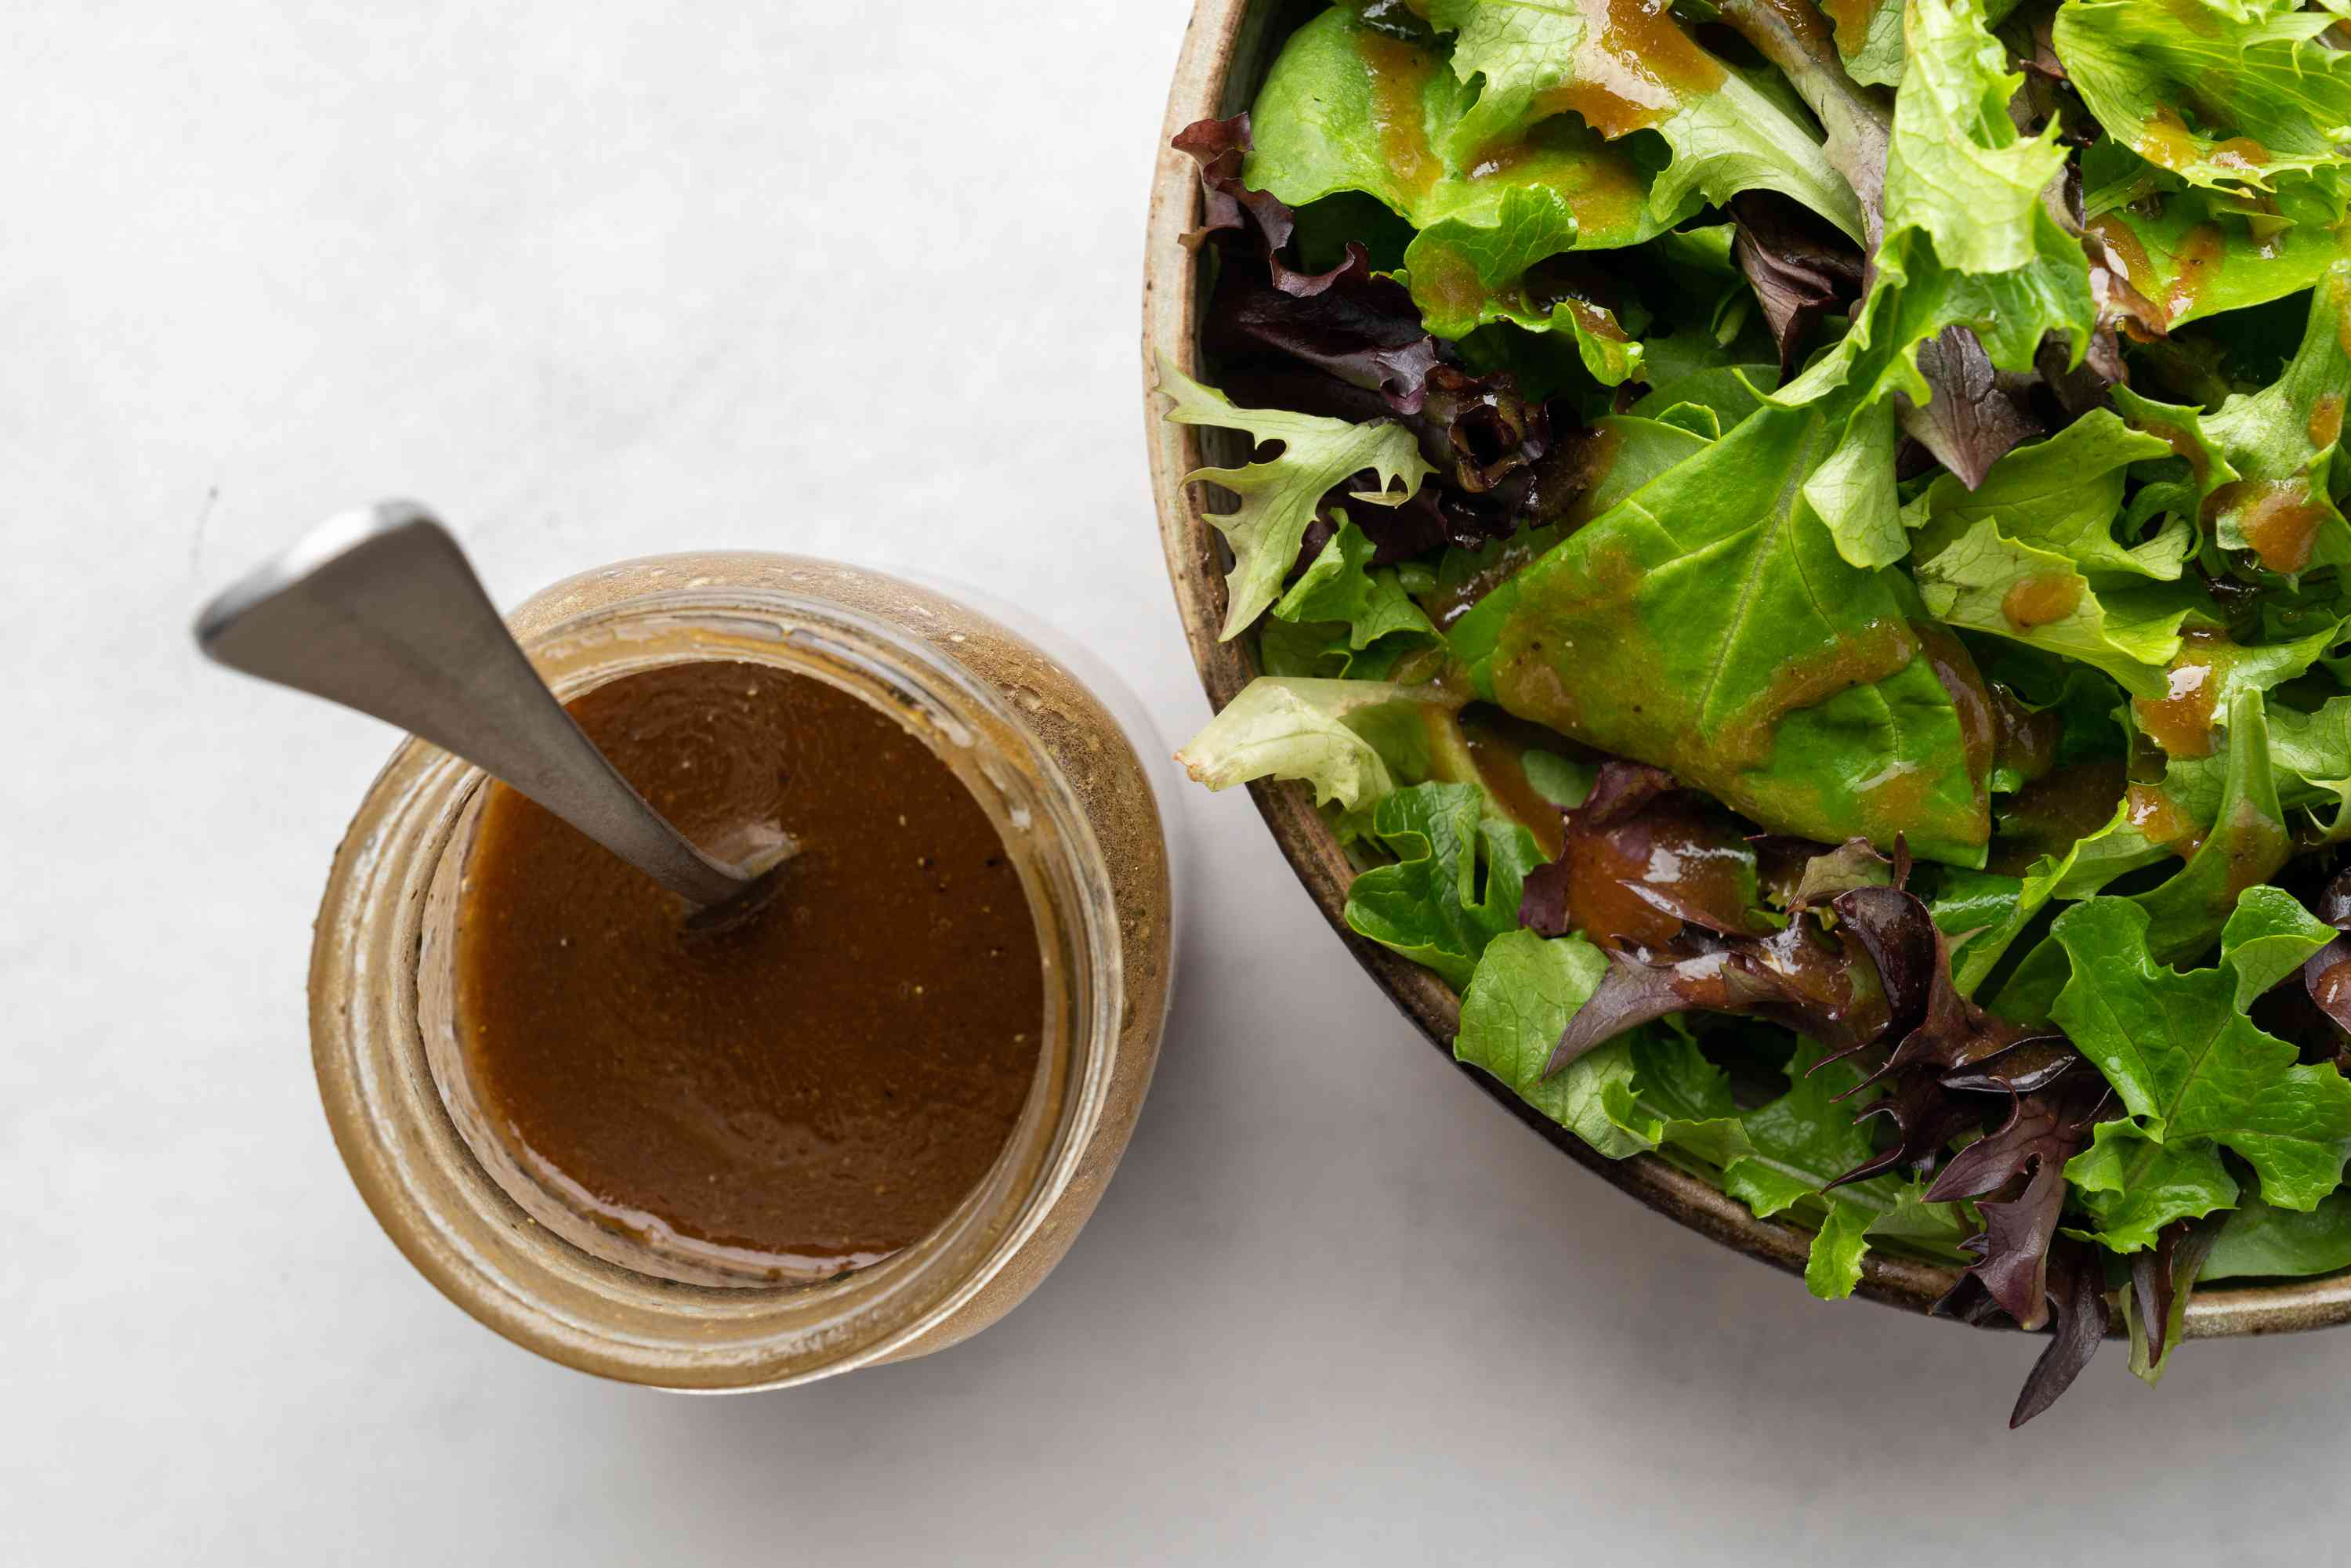 Balsamic and Mustard Vinaigrette with a salad